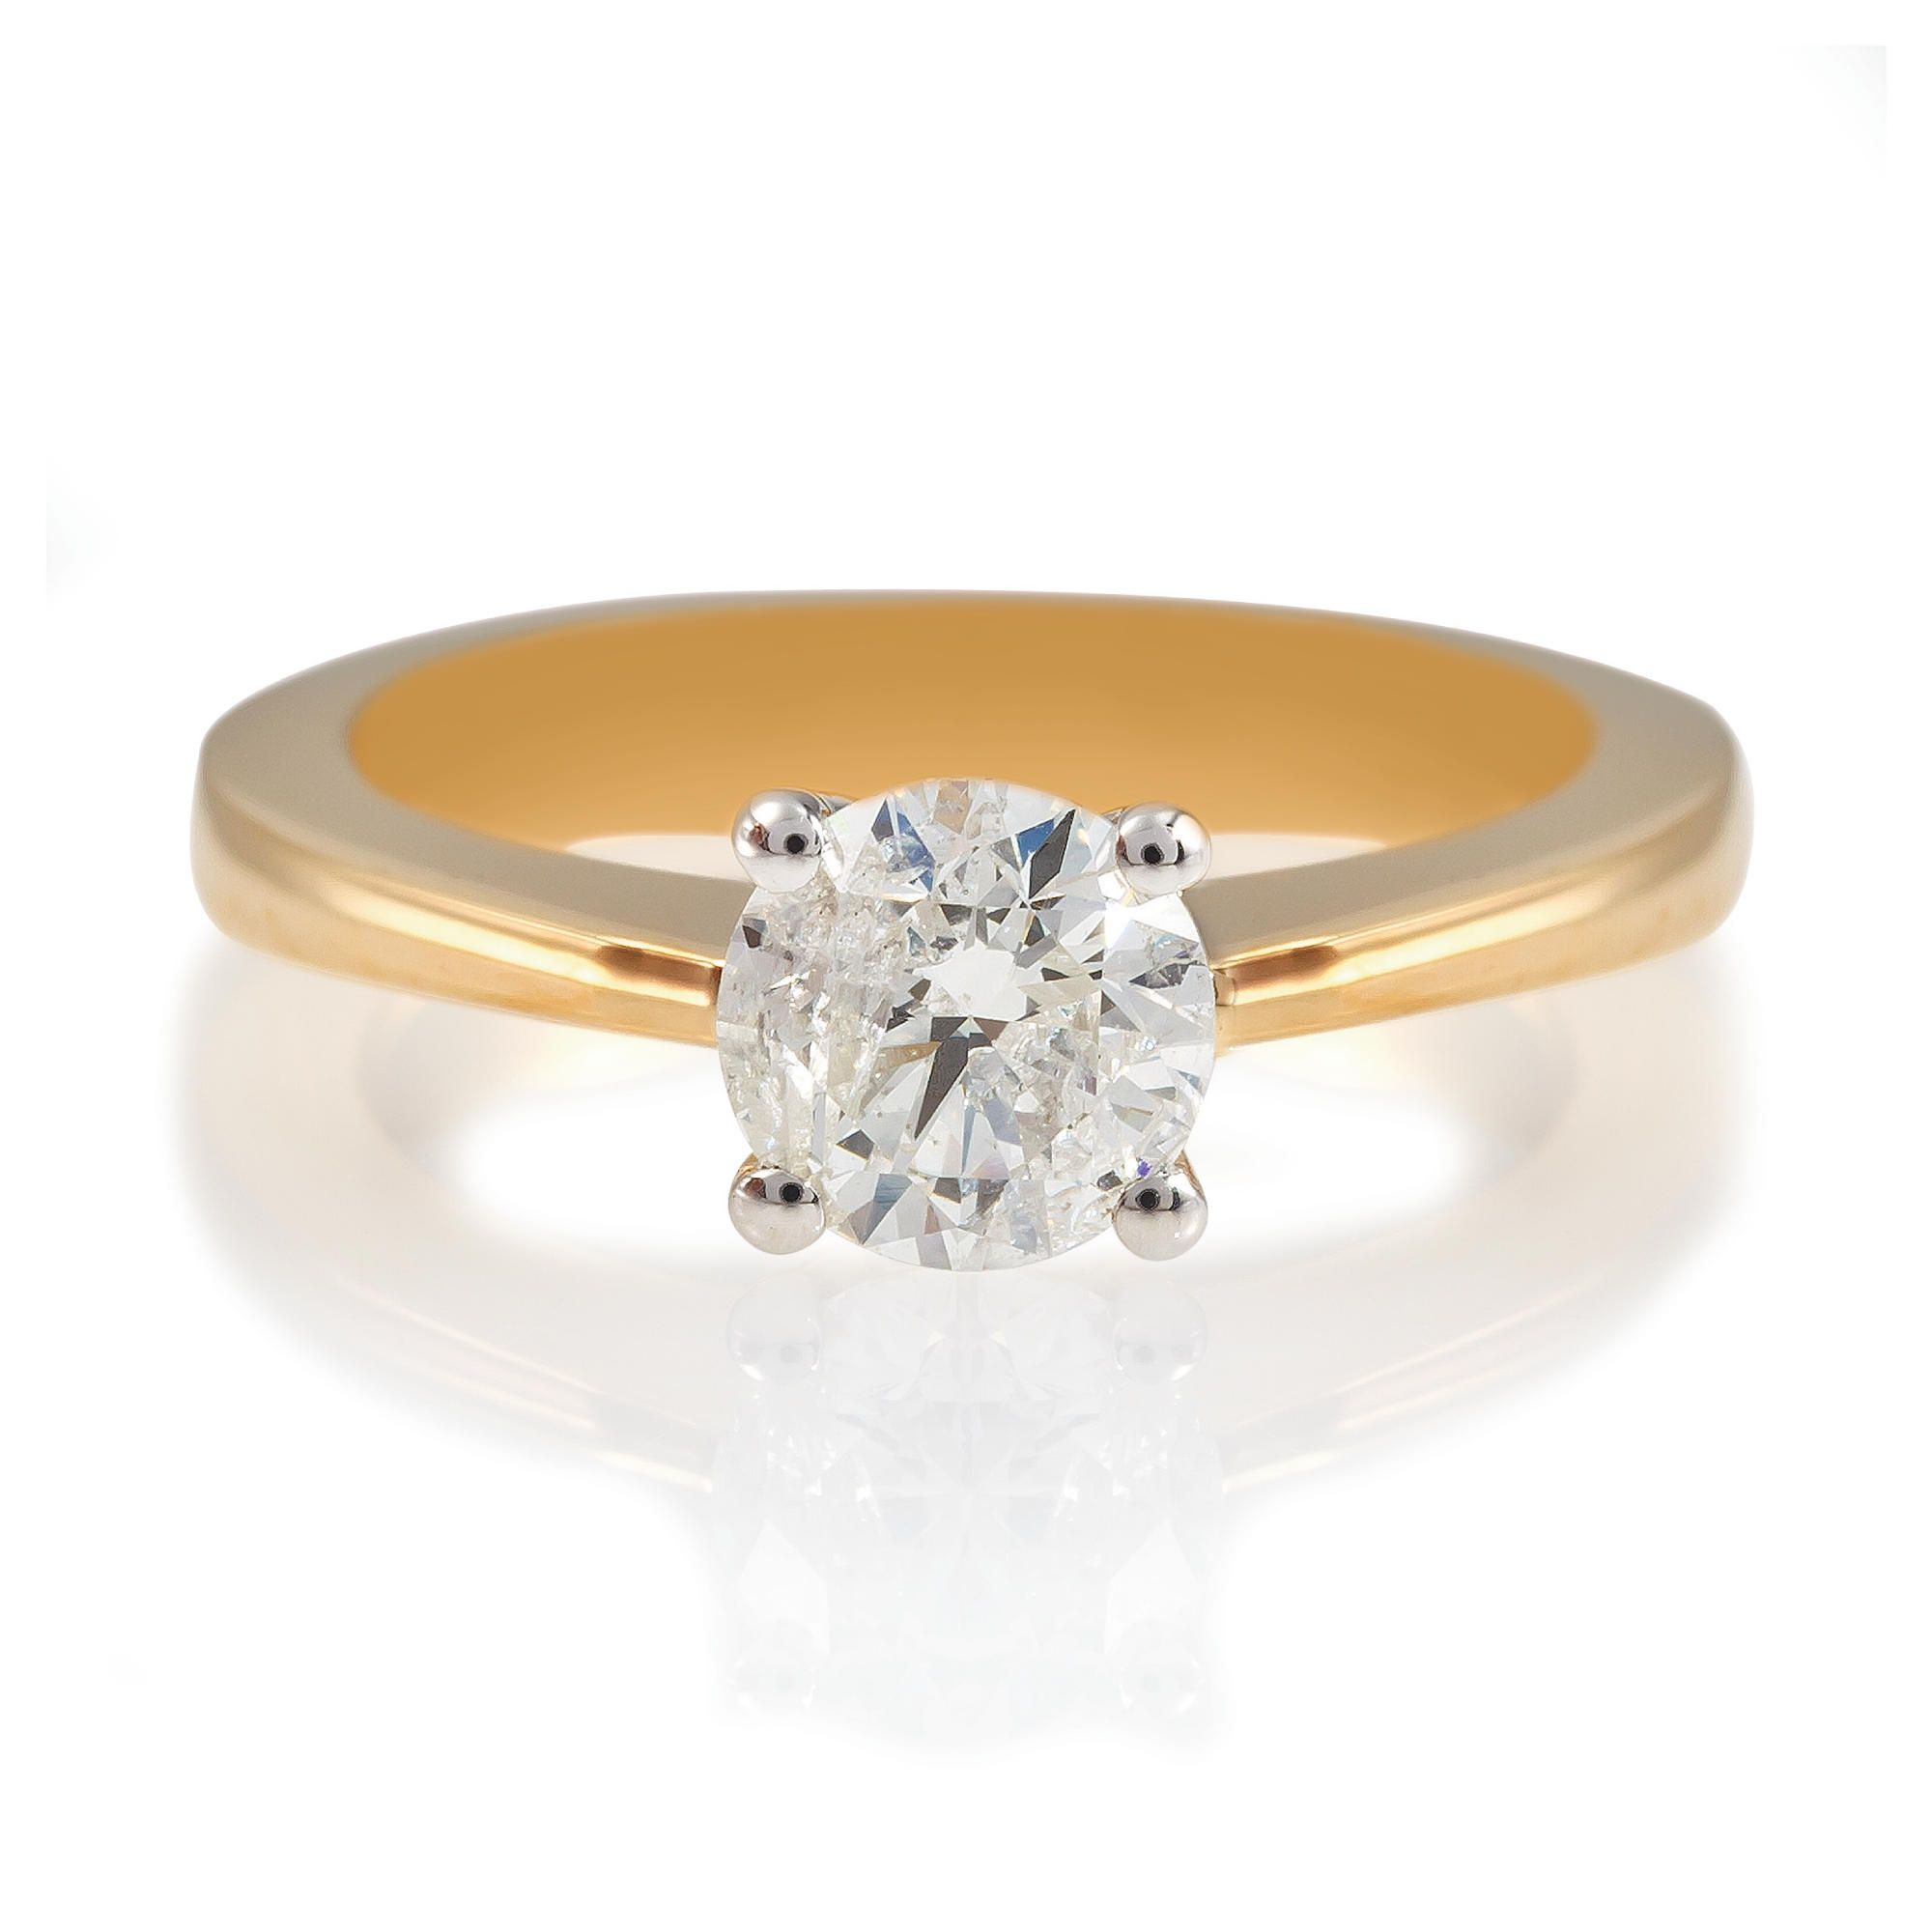 18ct Gold 1ct Diamond Solitaire Ring, N at Tesco Direct